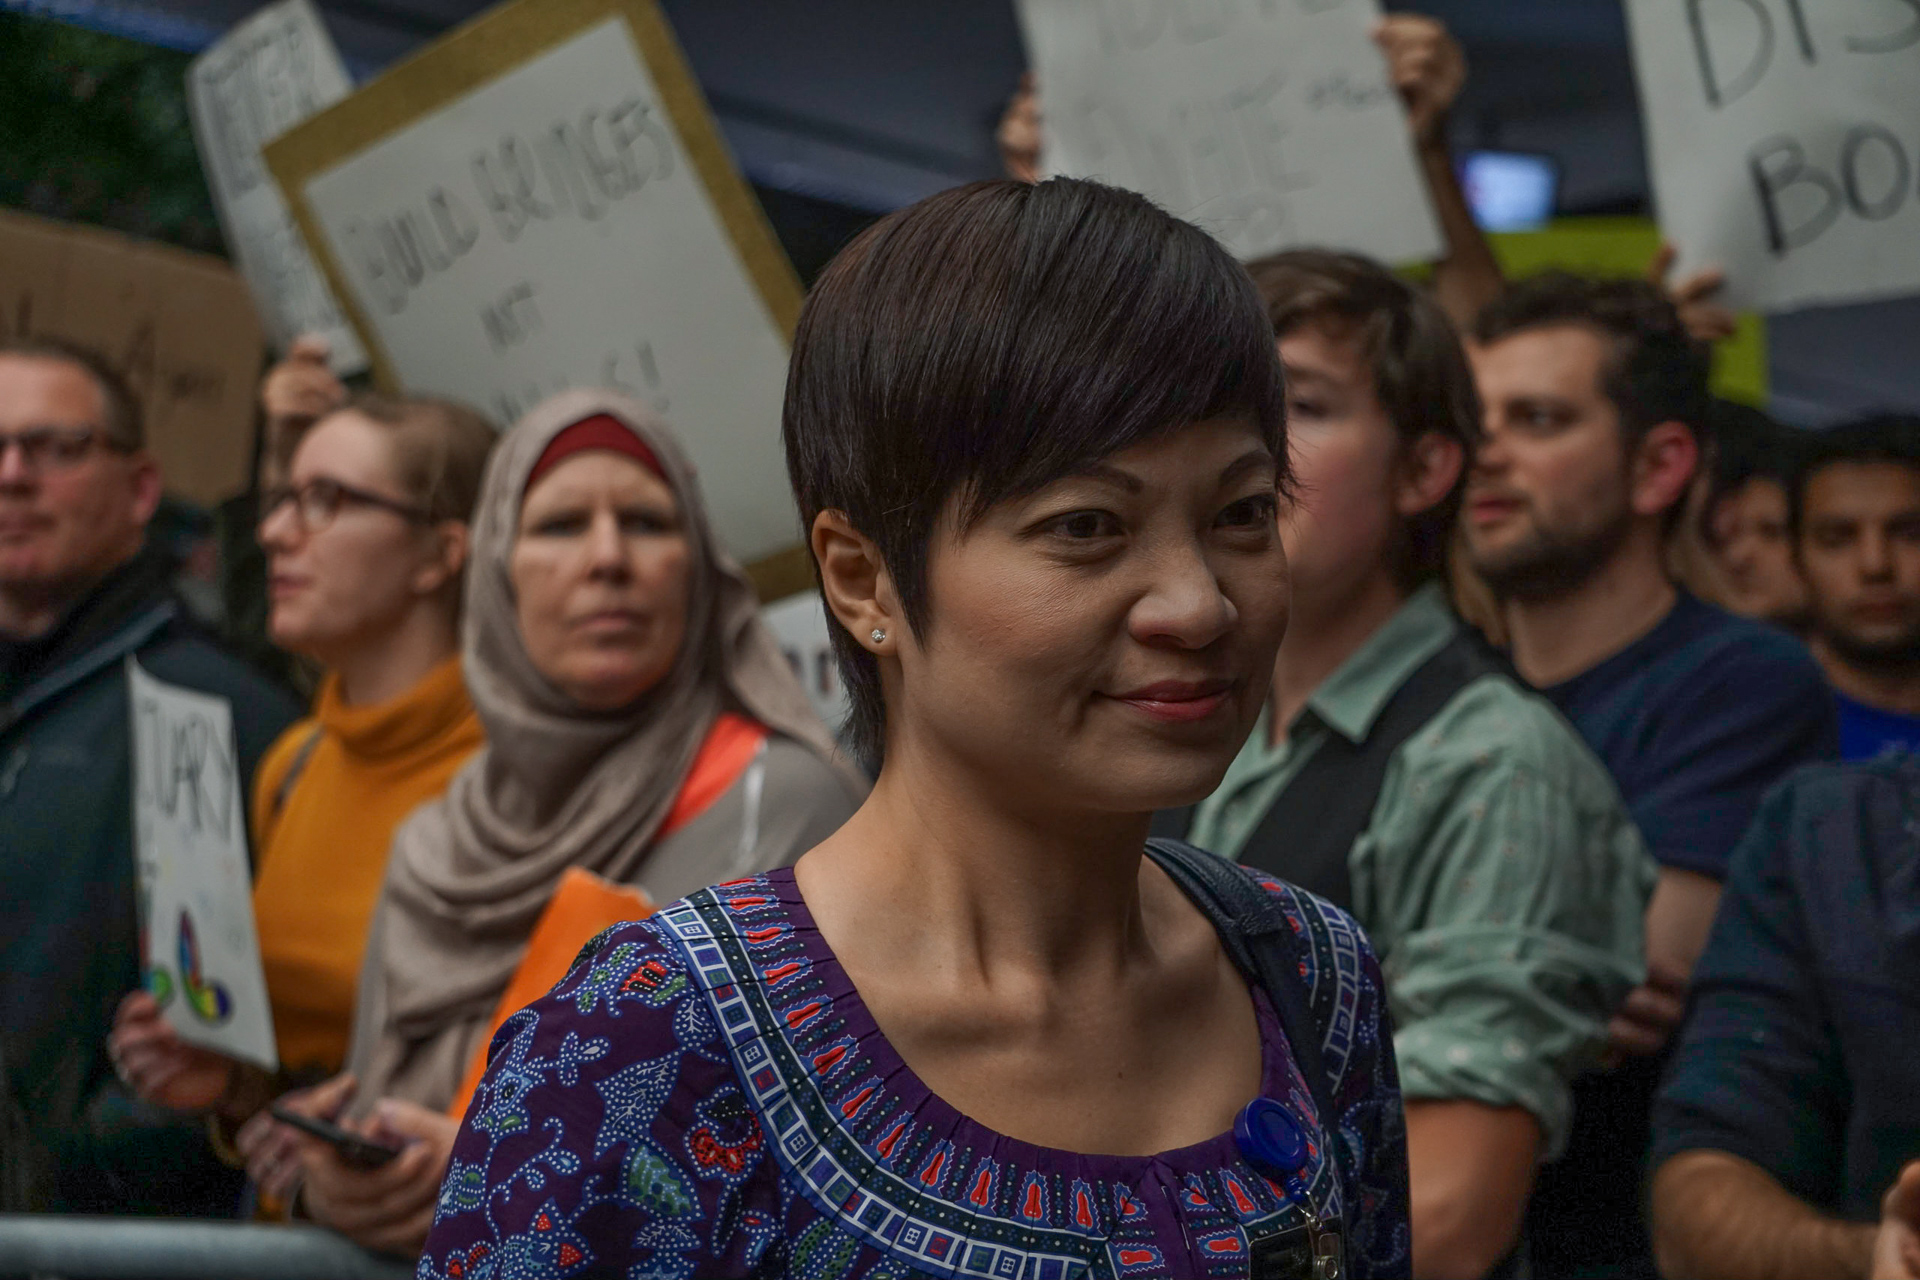 A woman exits the international terminal after arriving from over seas and is greeted by anti-Muslim Ban protestors welcoming her into the country.